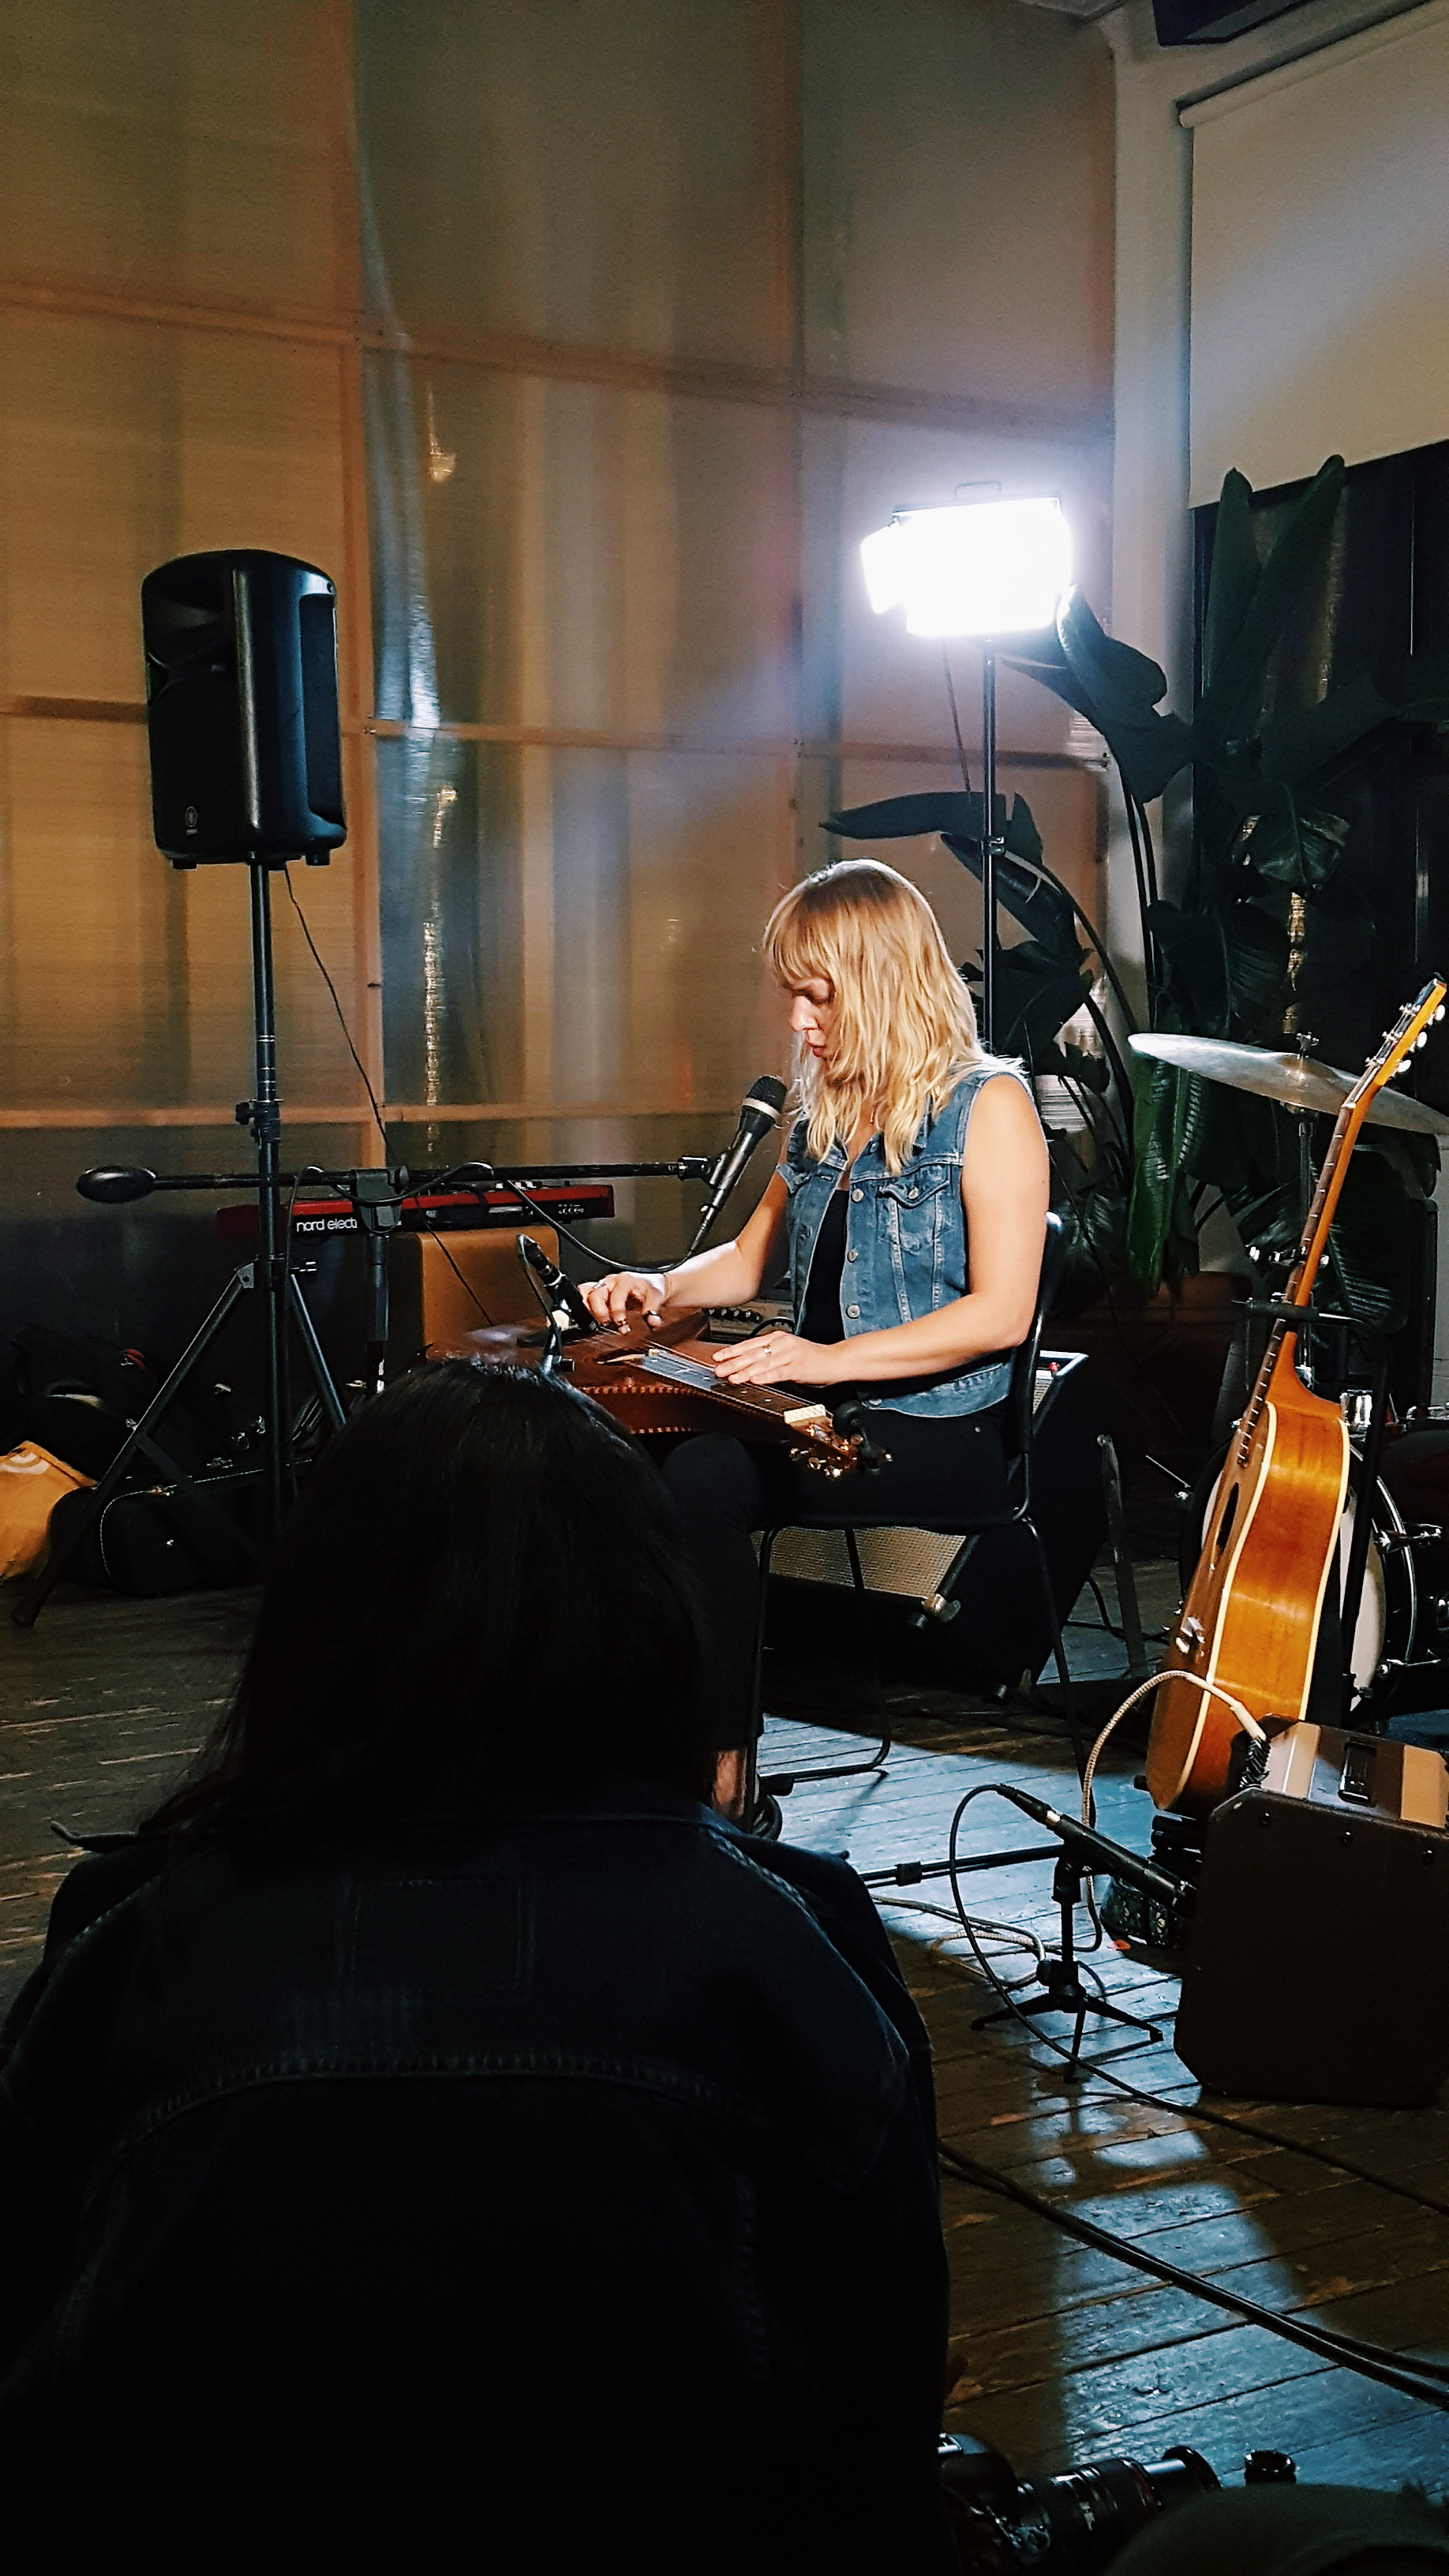 Lauren Calve @So Far Sounds NYC which provides intimate music events with local acts in 274 cities around the world.